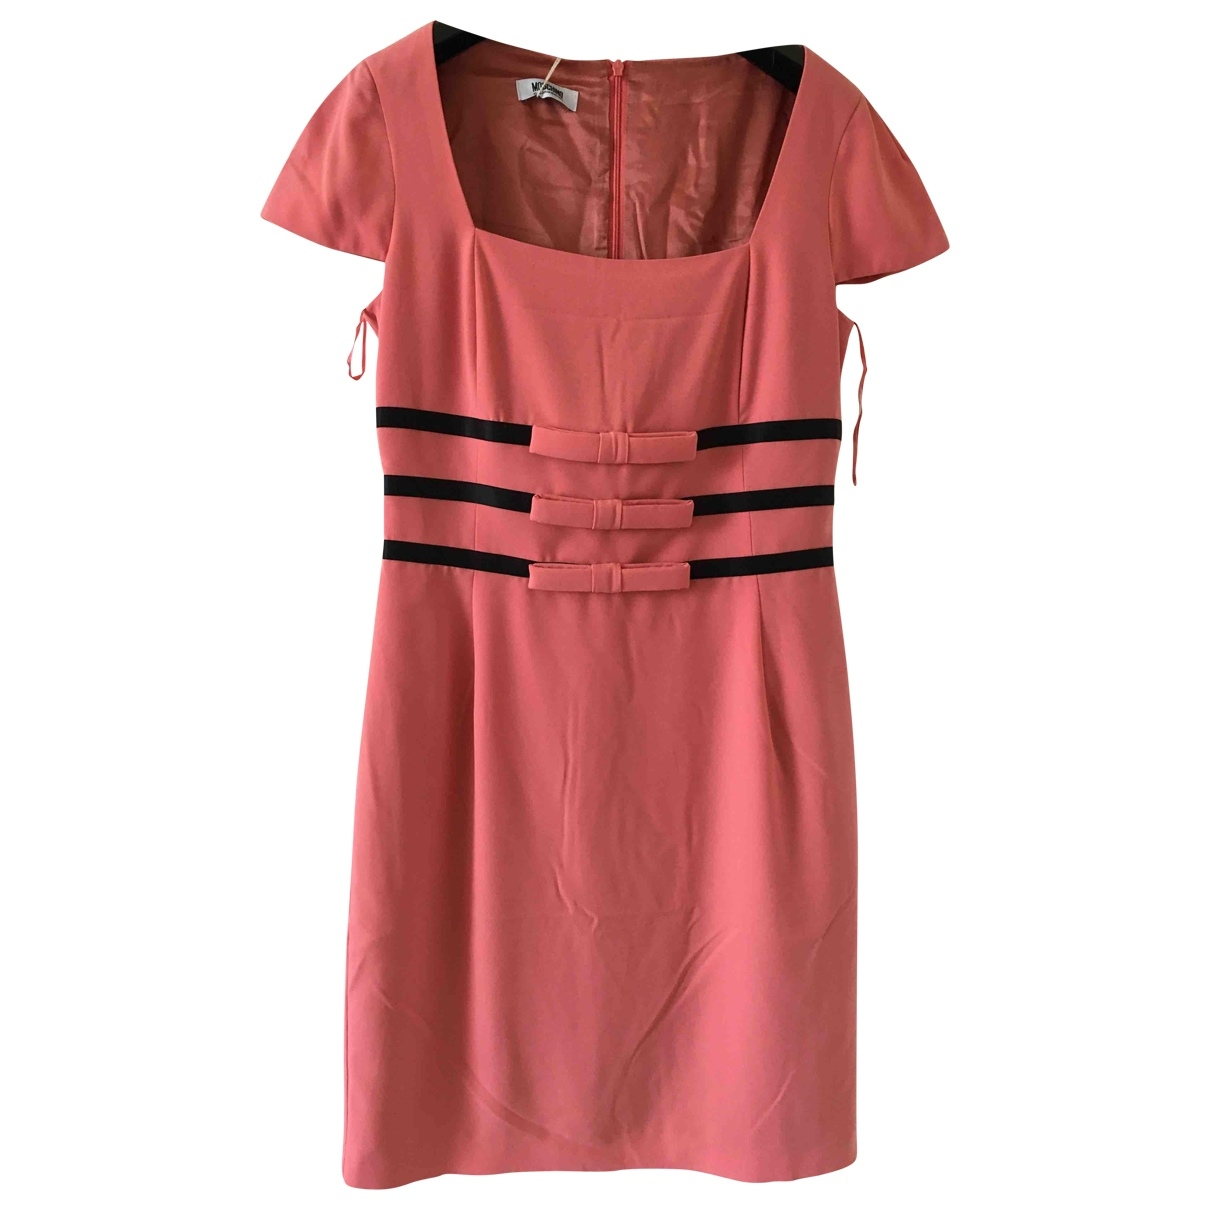 Moschino \N Kleid in  Rosa Polyester